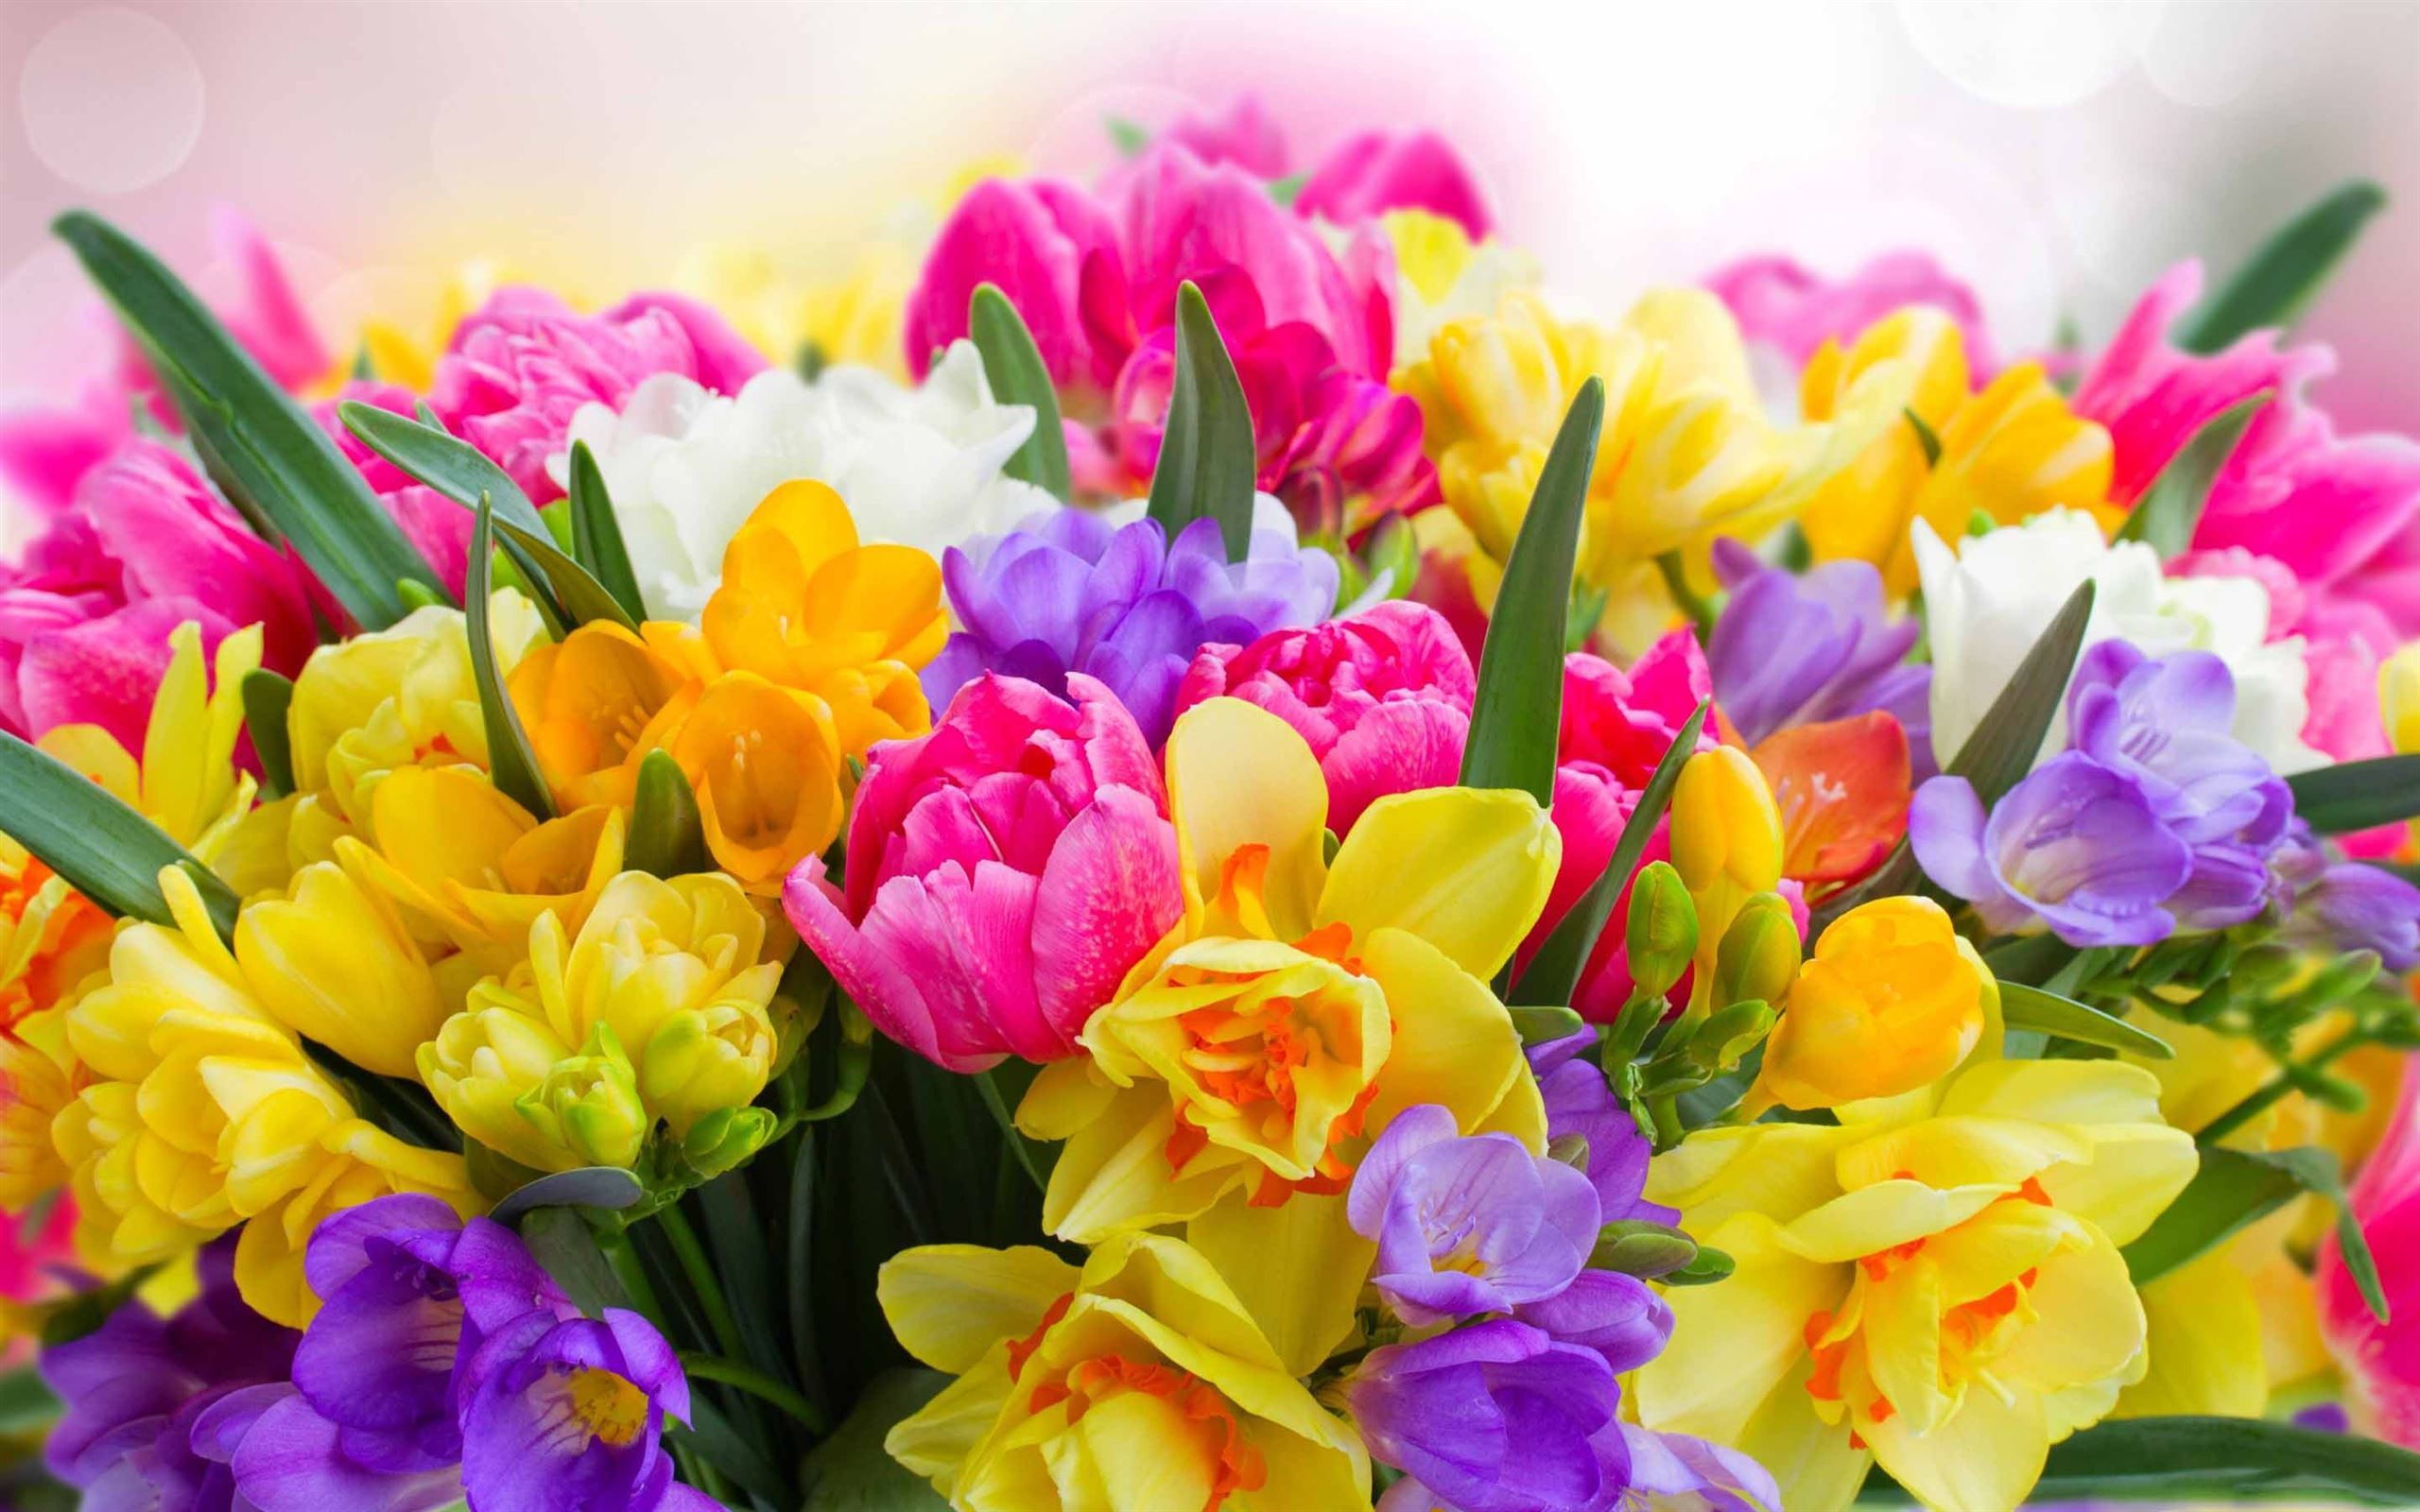 Beautiful Spring Flower Mac Wallpaper Download | AllMacWallpaper